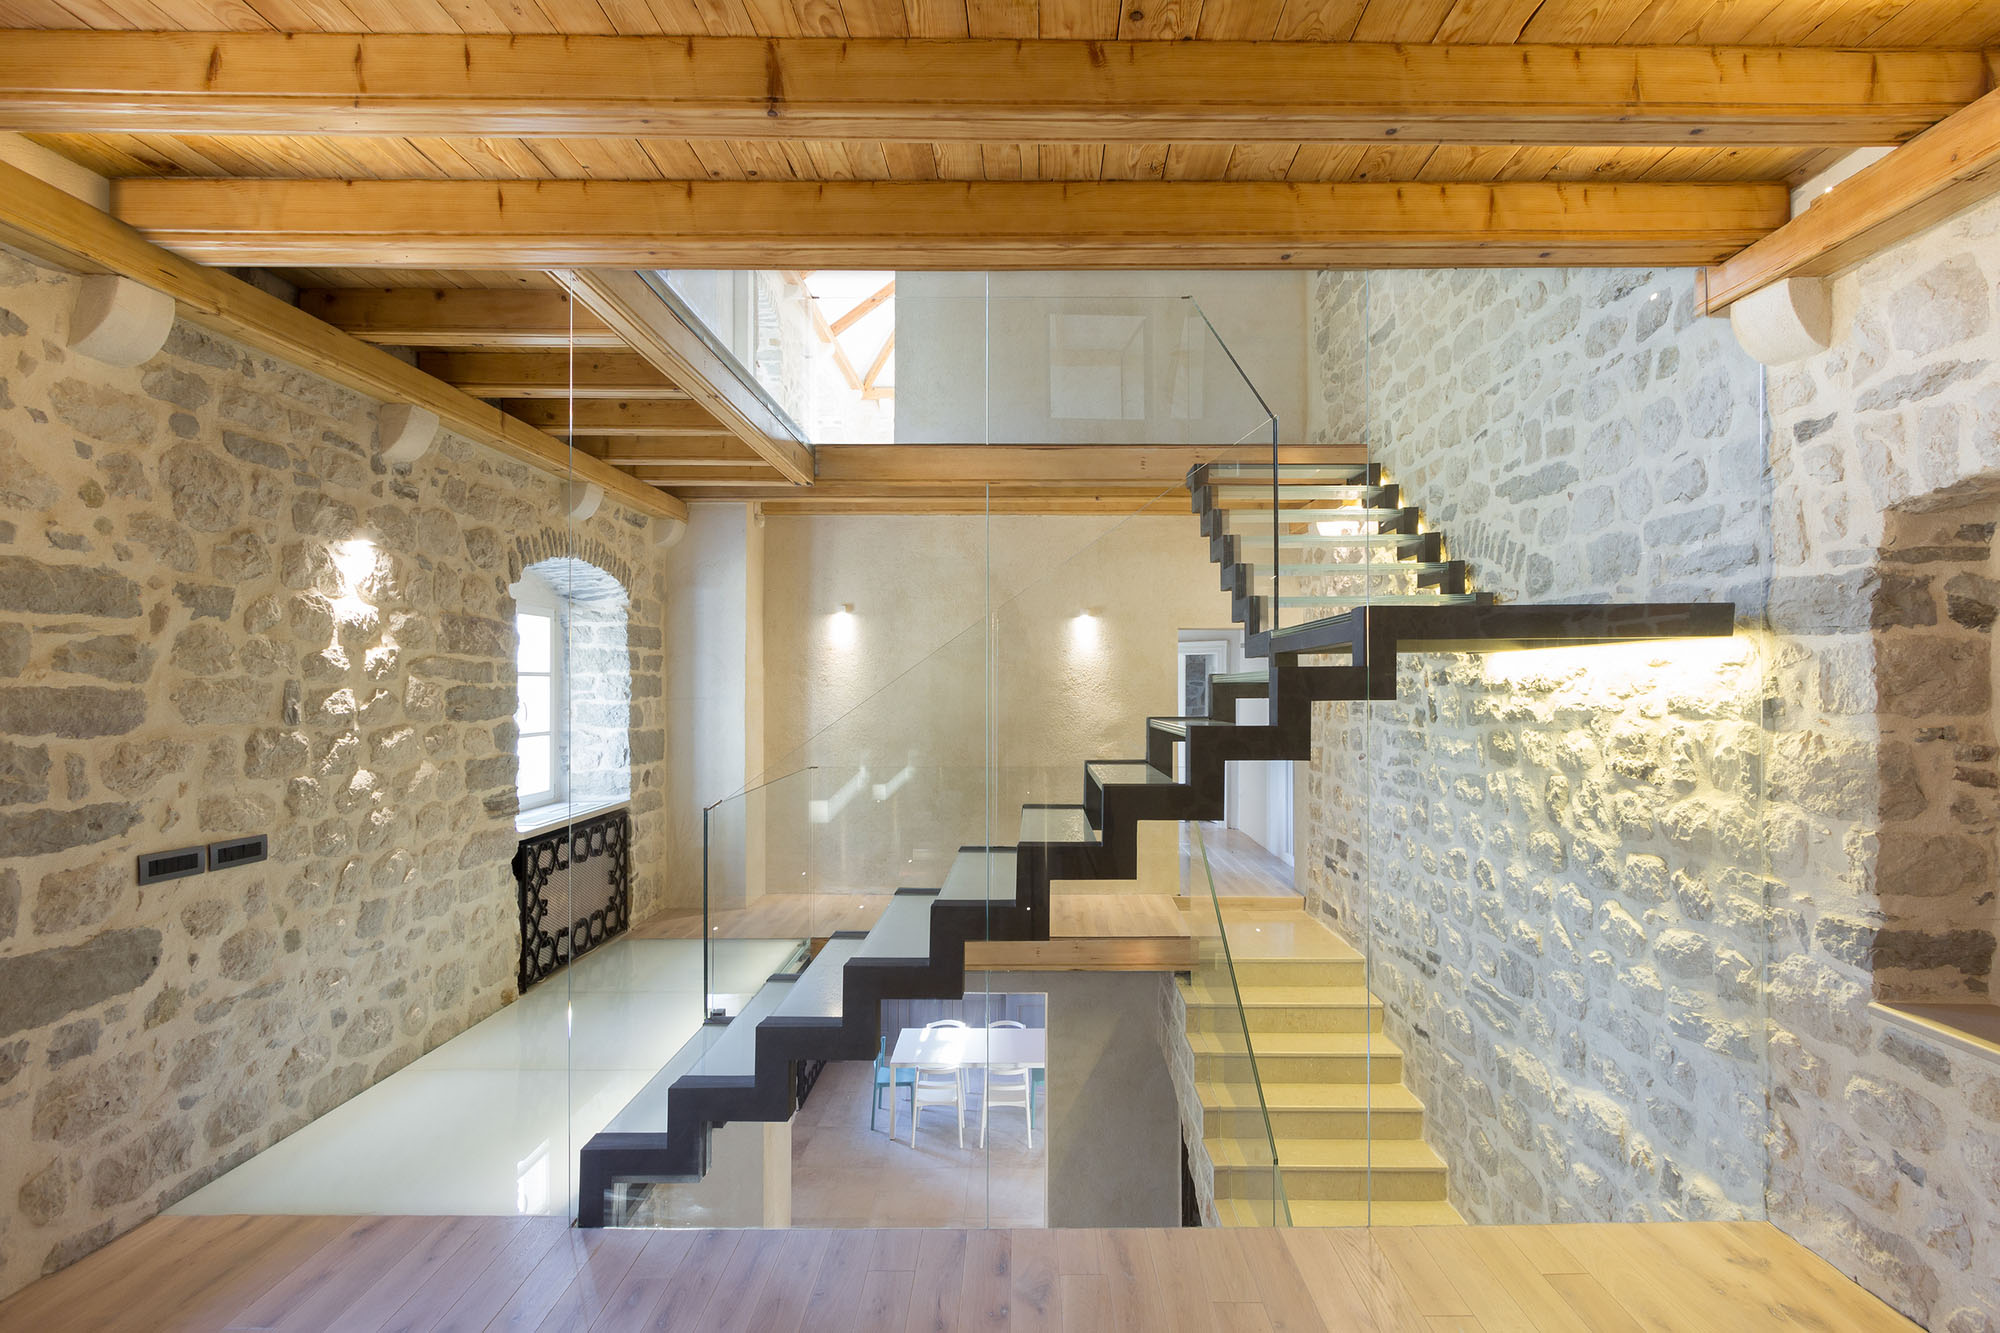 Modern Renovation Of A 19th Century Old Stone House In Montenegro IDesignAr